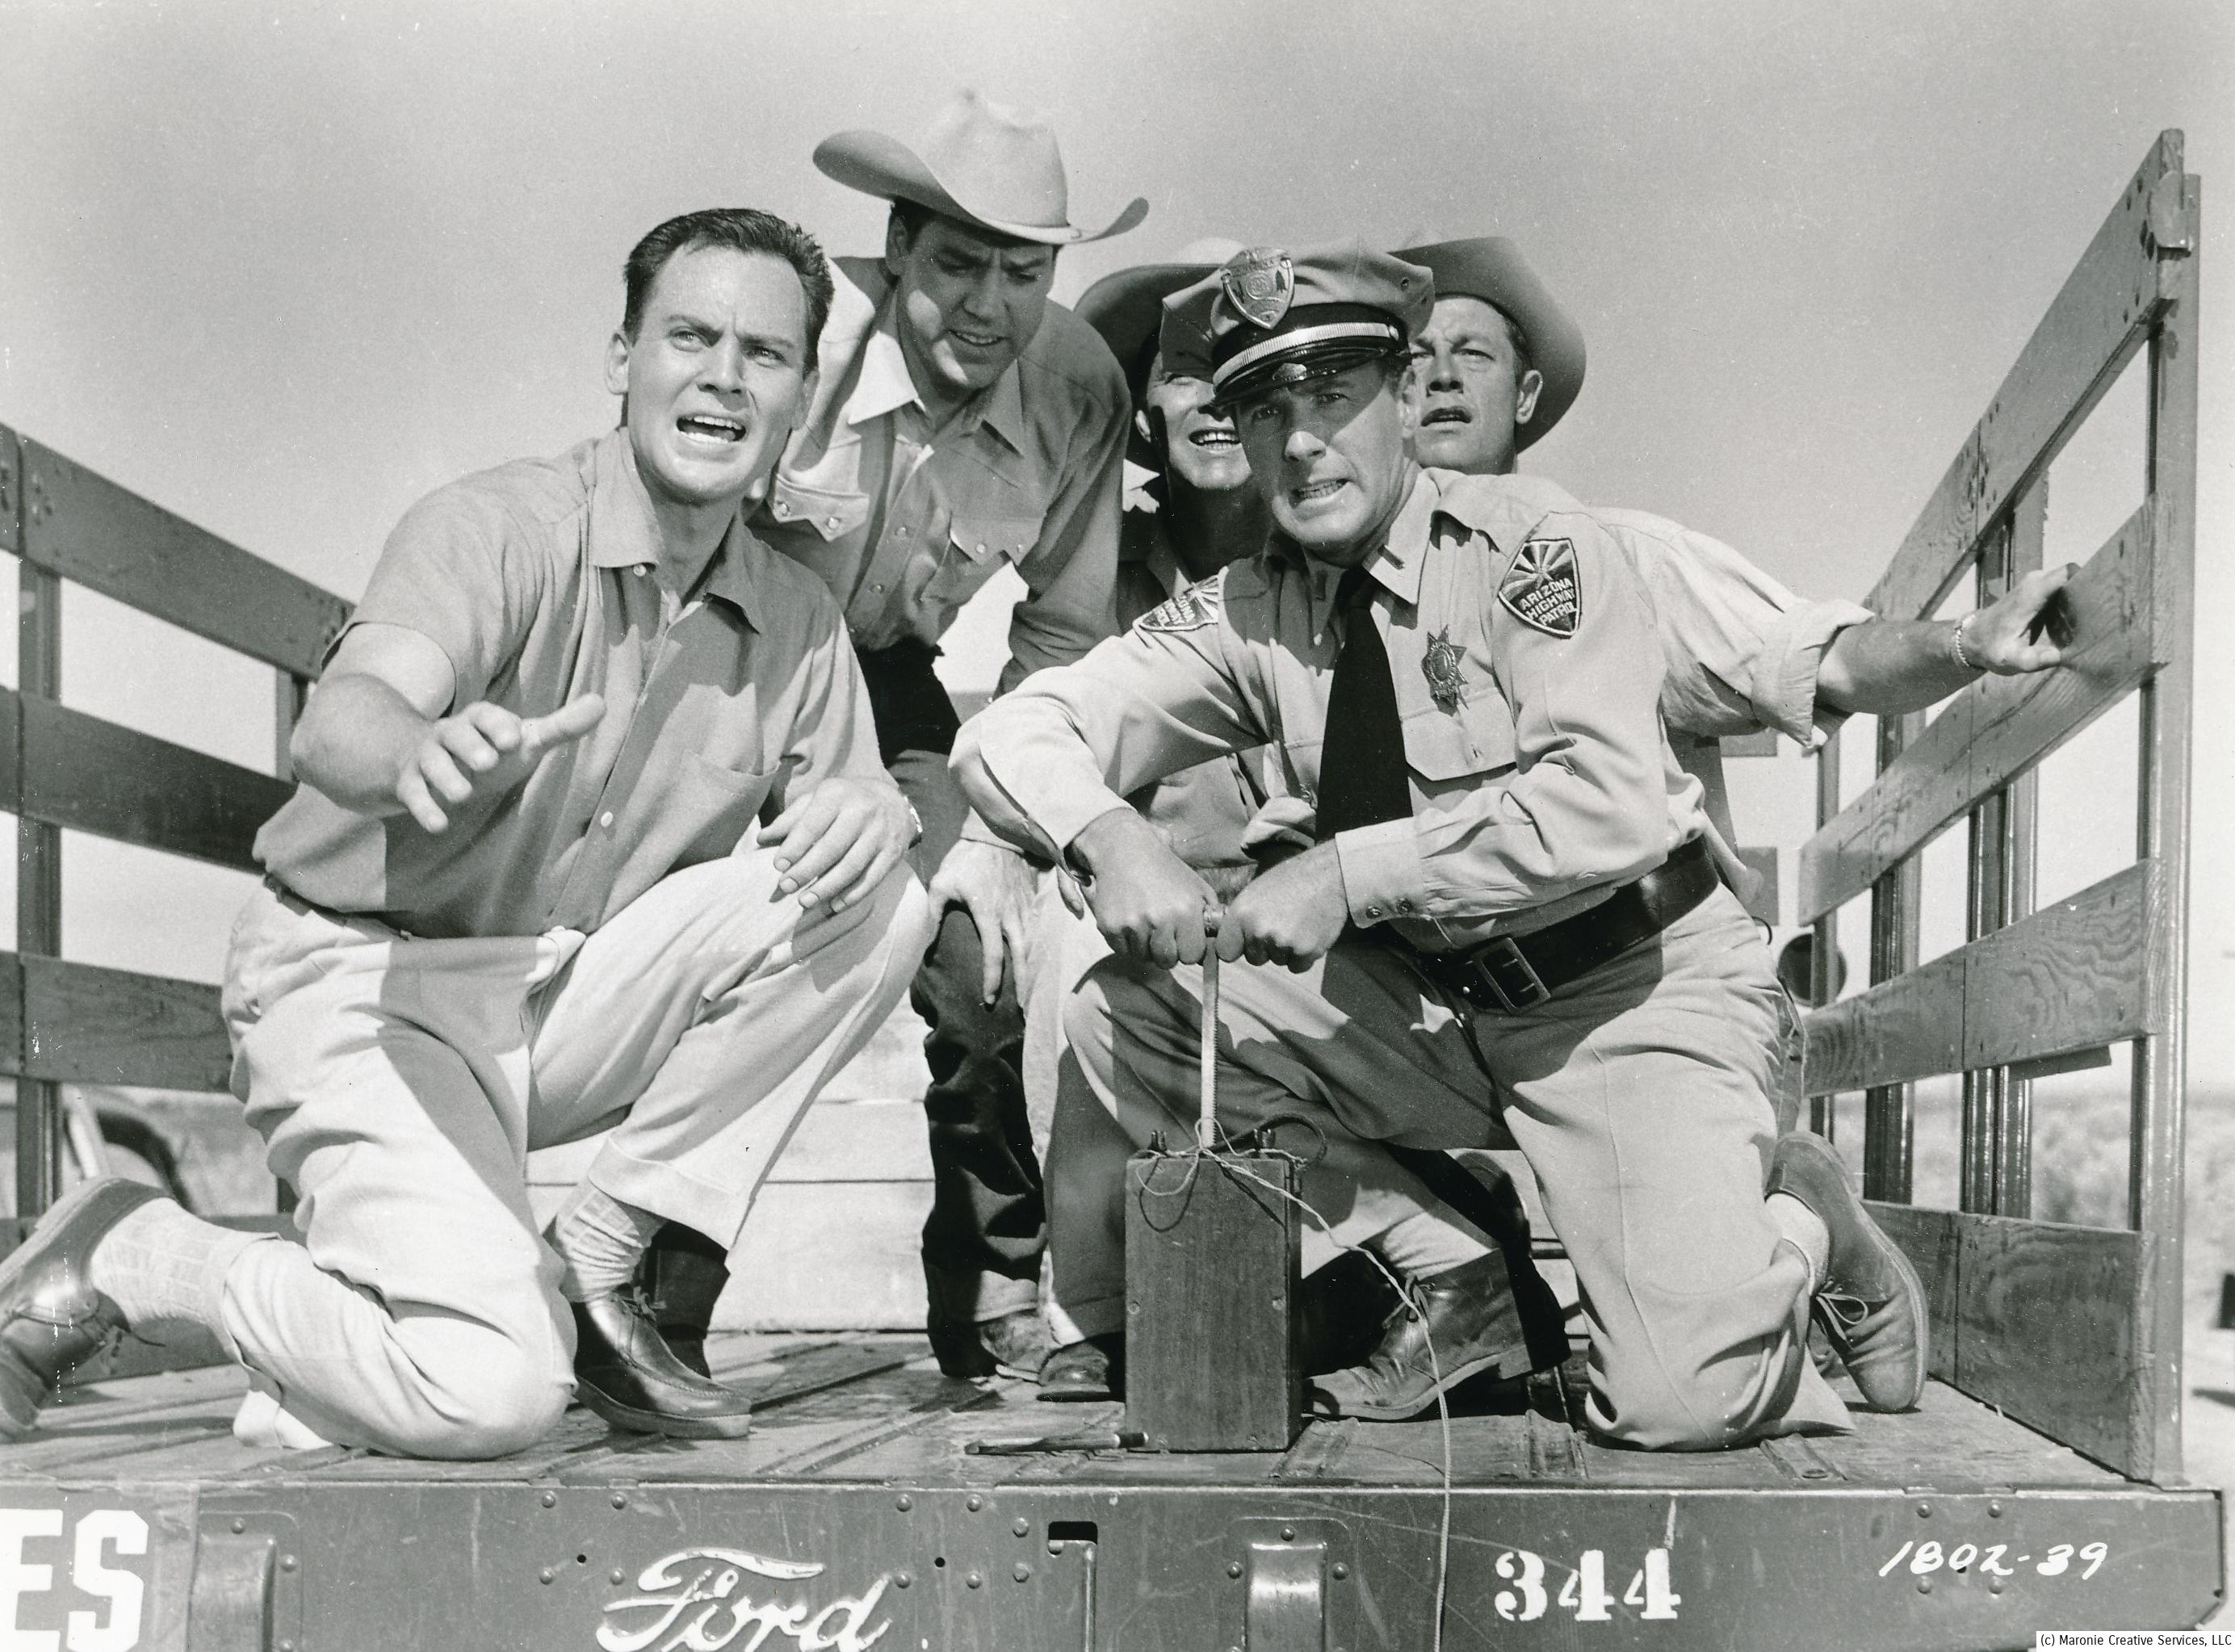 John Agar (l) and local law enforcement attempt to dynamite the oncoming monster. Needless to say, it only gave him a tickle!